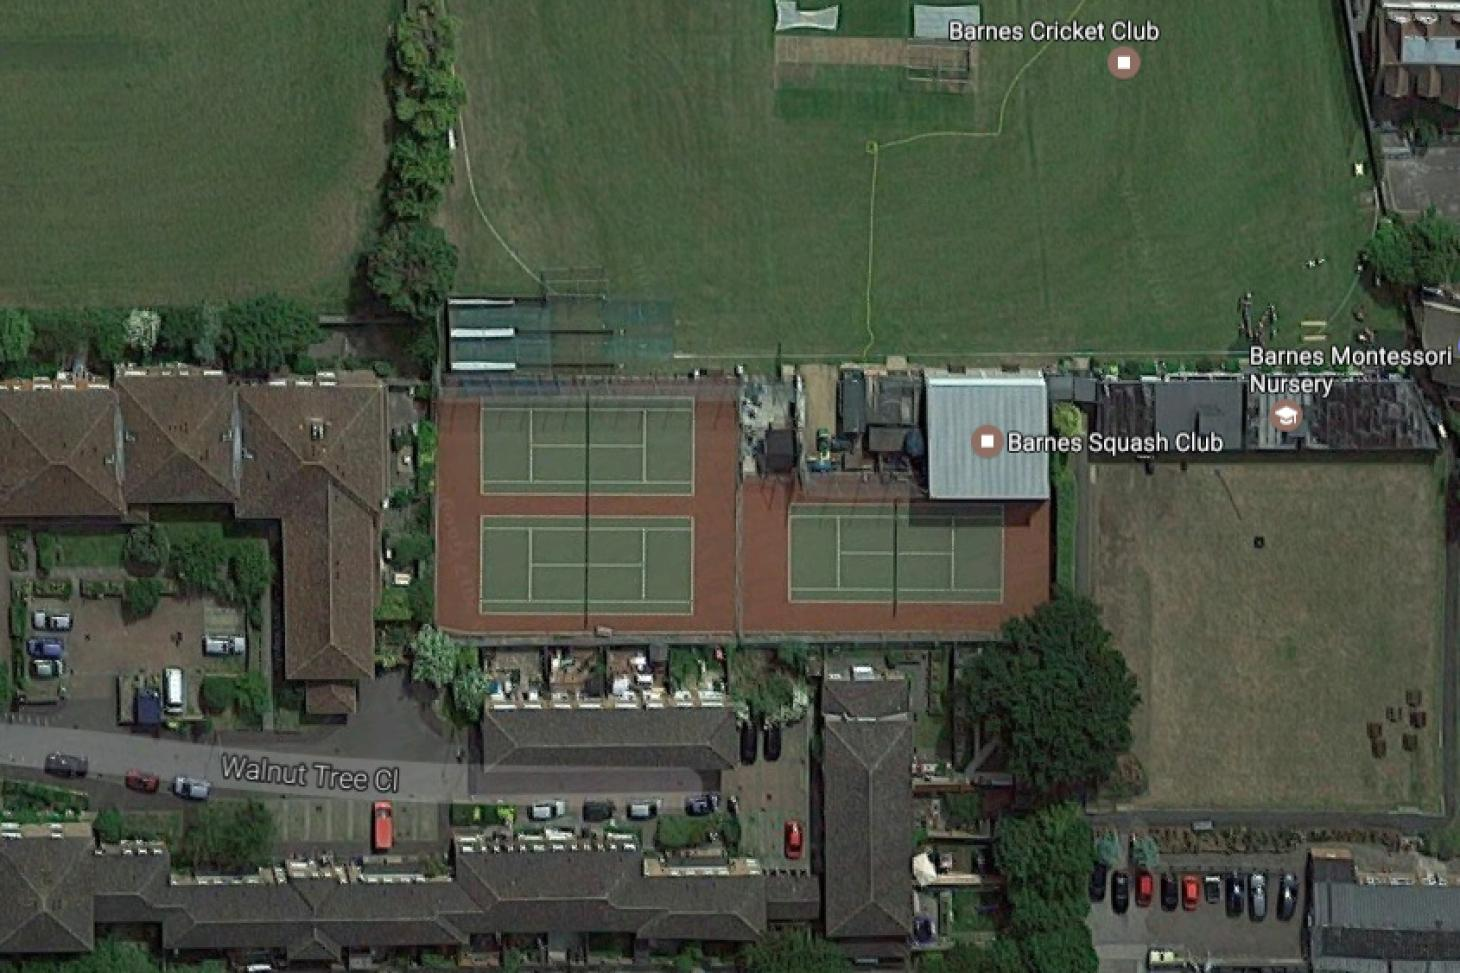 Barnes Tennis Club Outdoor | Hard (macadam) tennis court